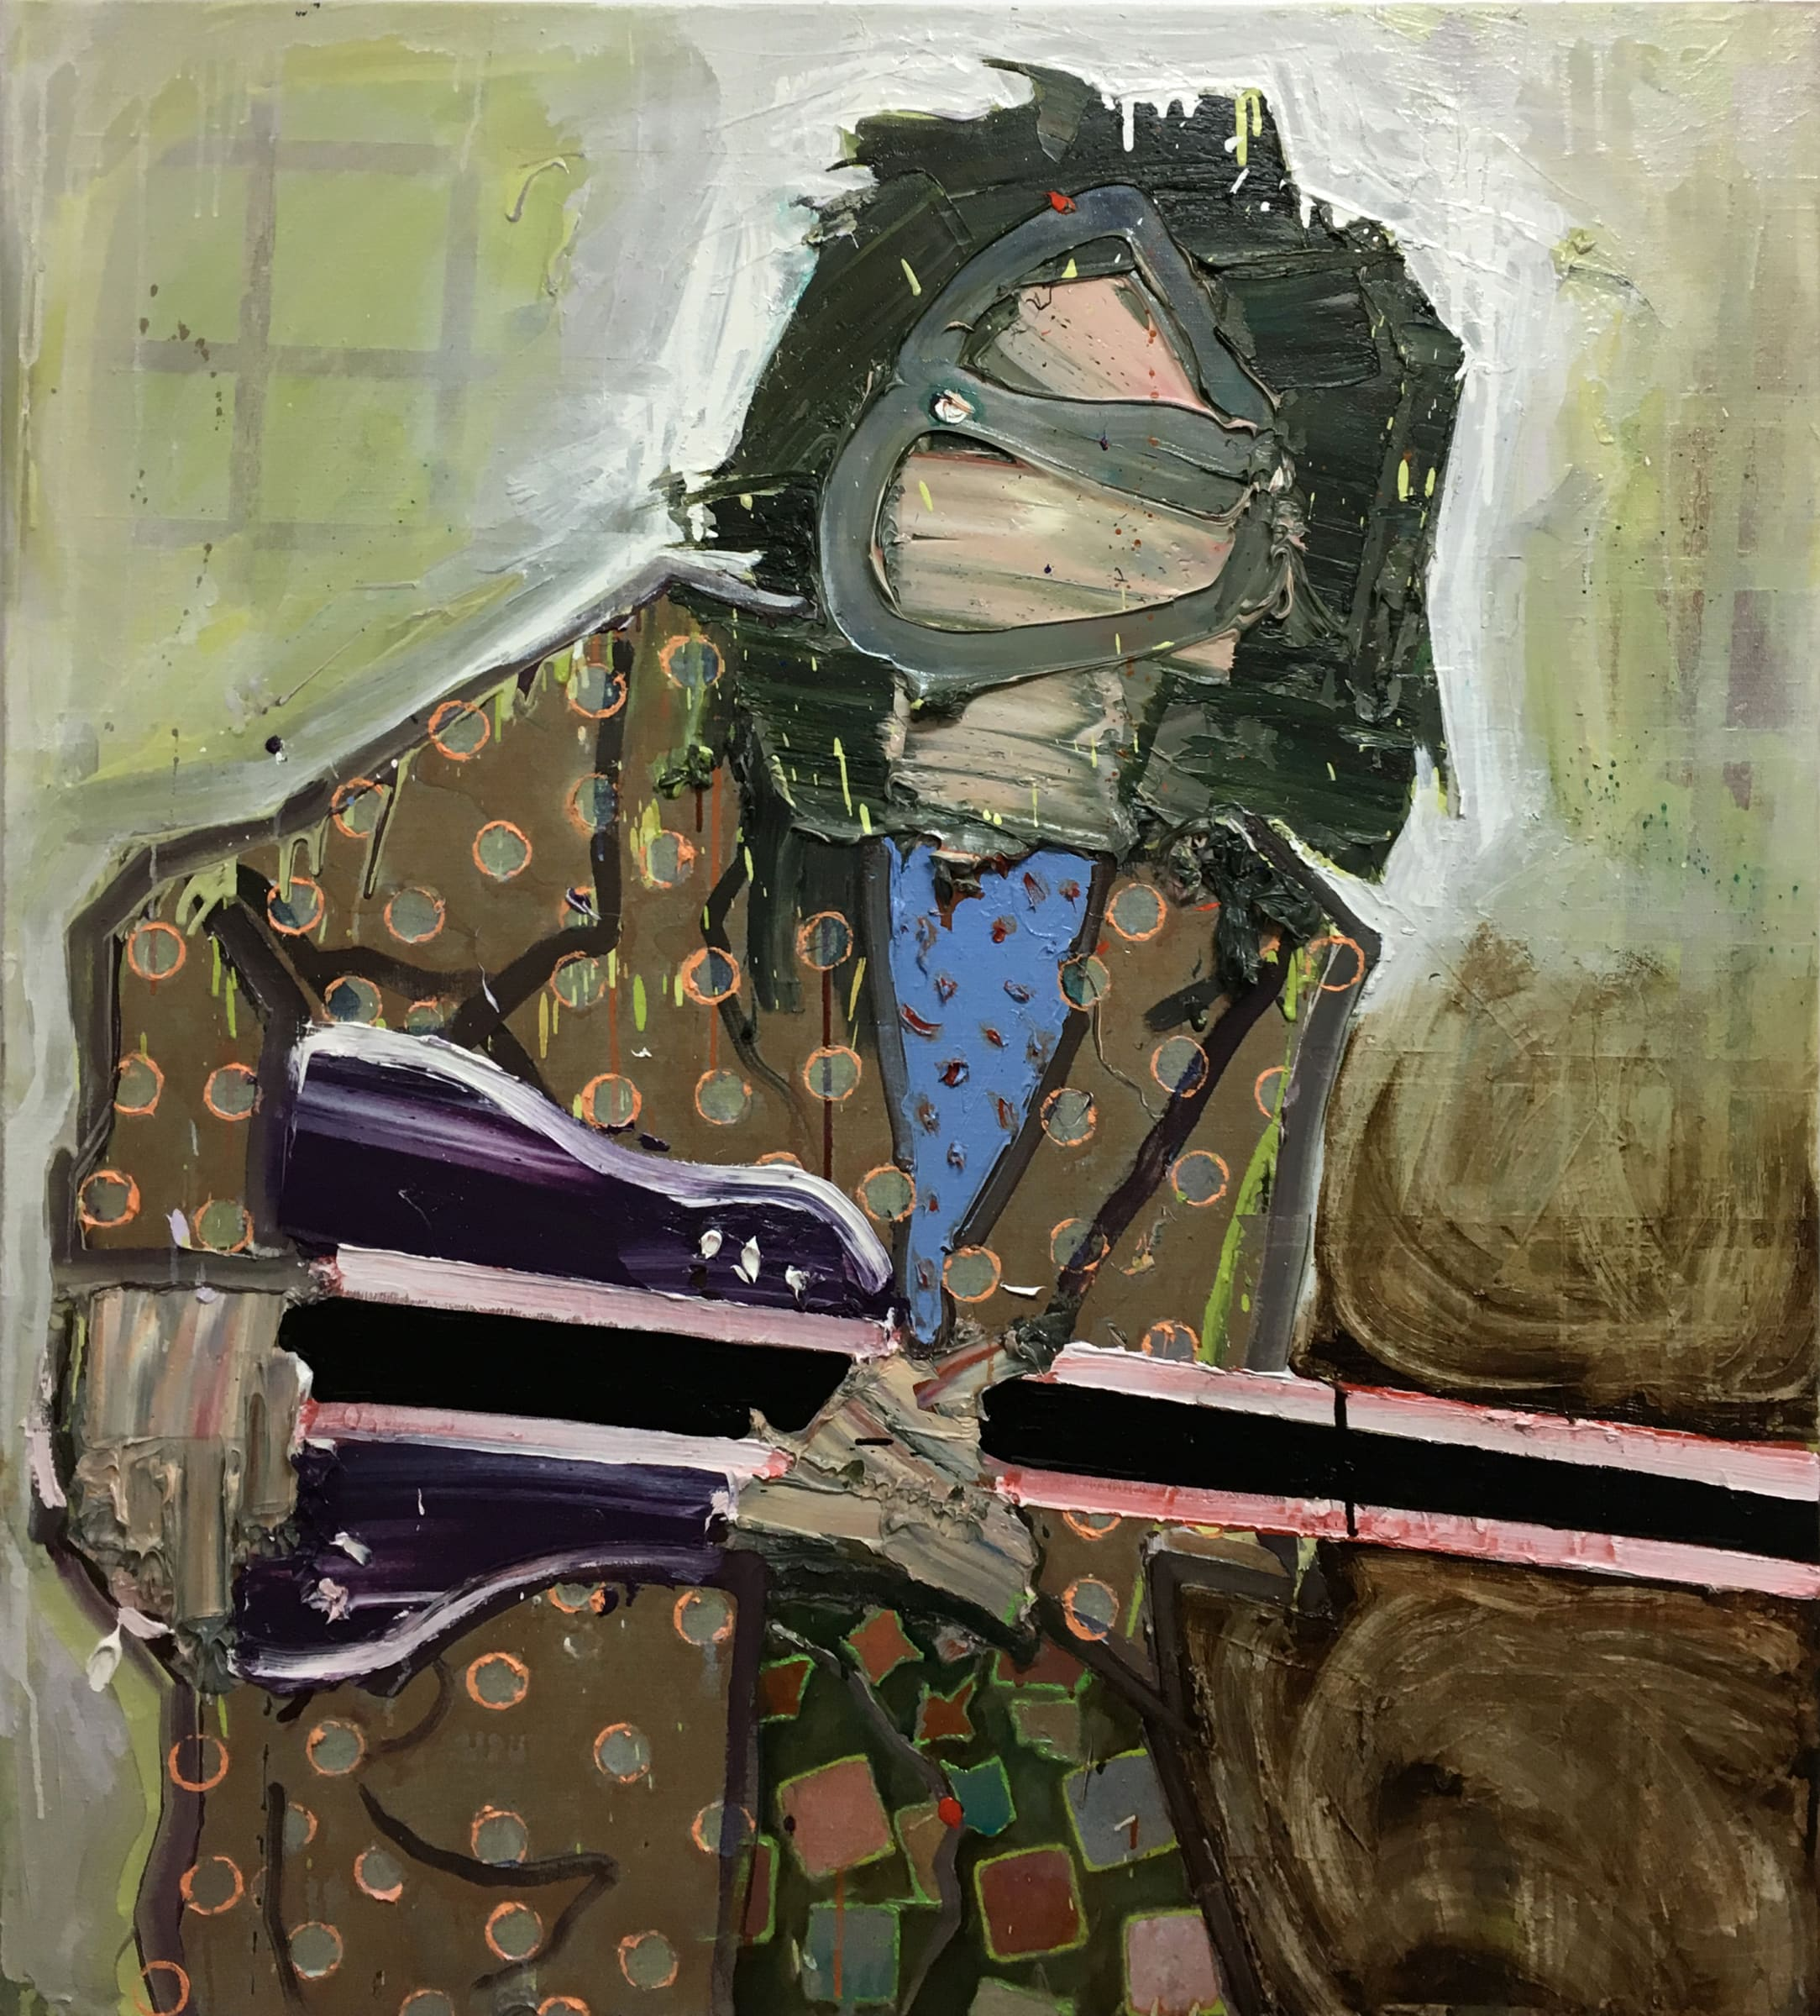 "<span class=""link fancybox-details-link""><a href=""/artists/57-toby-raine/works/7153-toby-raine-jimmy-page-backstage-in-miami-with-fancy-coat-2017/"">View Detail Page</a></span><div class=""artist""><strong>Toby Raine</strong></div> <div class=""title""><em>Jimmy Page backstage in Miami with fancy coat and guitar</em>, 2017</div> <div class=""medium"">Oil on linen</div> <div class=""dimensions"">43.3 x 39.4 in<br />110 x 100 cm</div>"